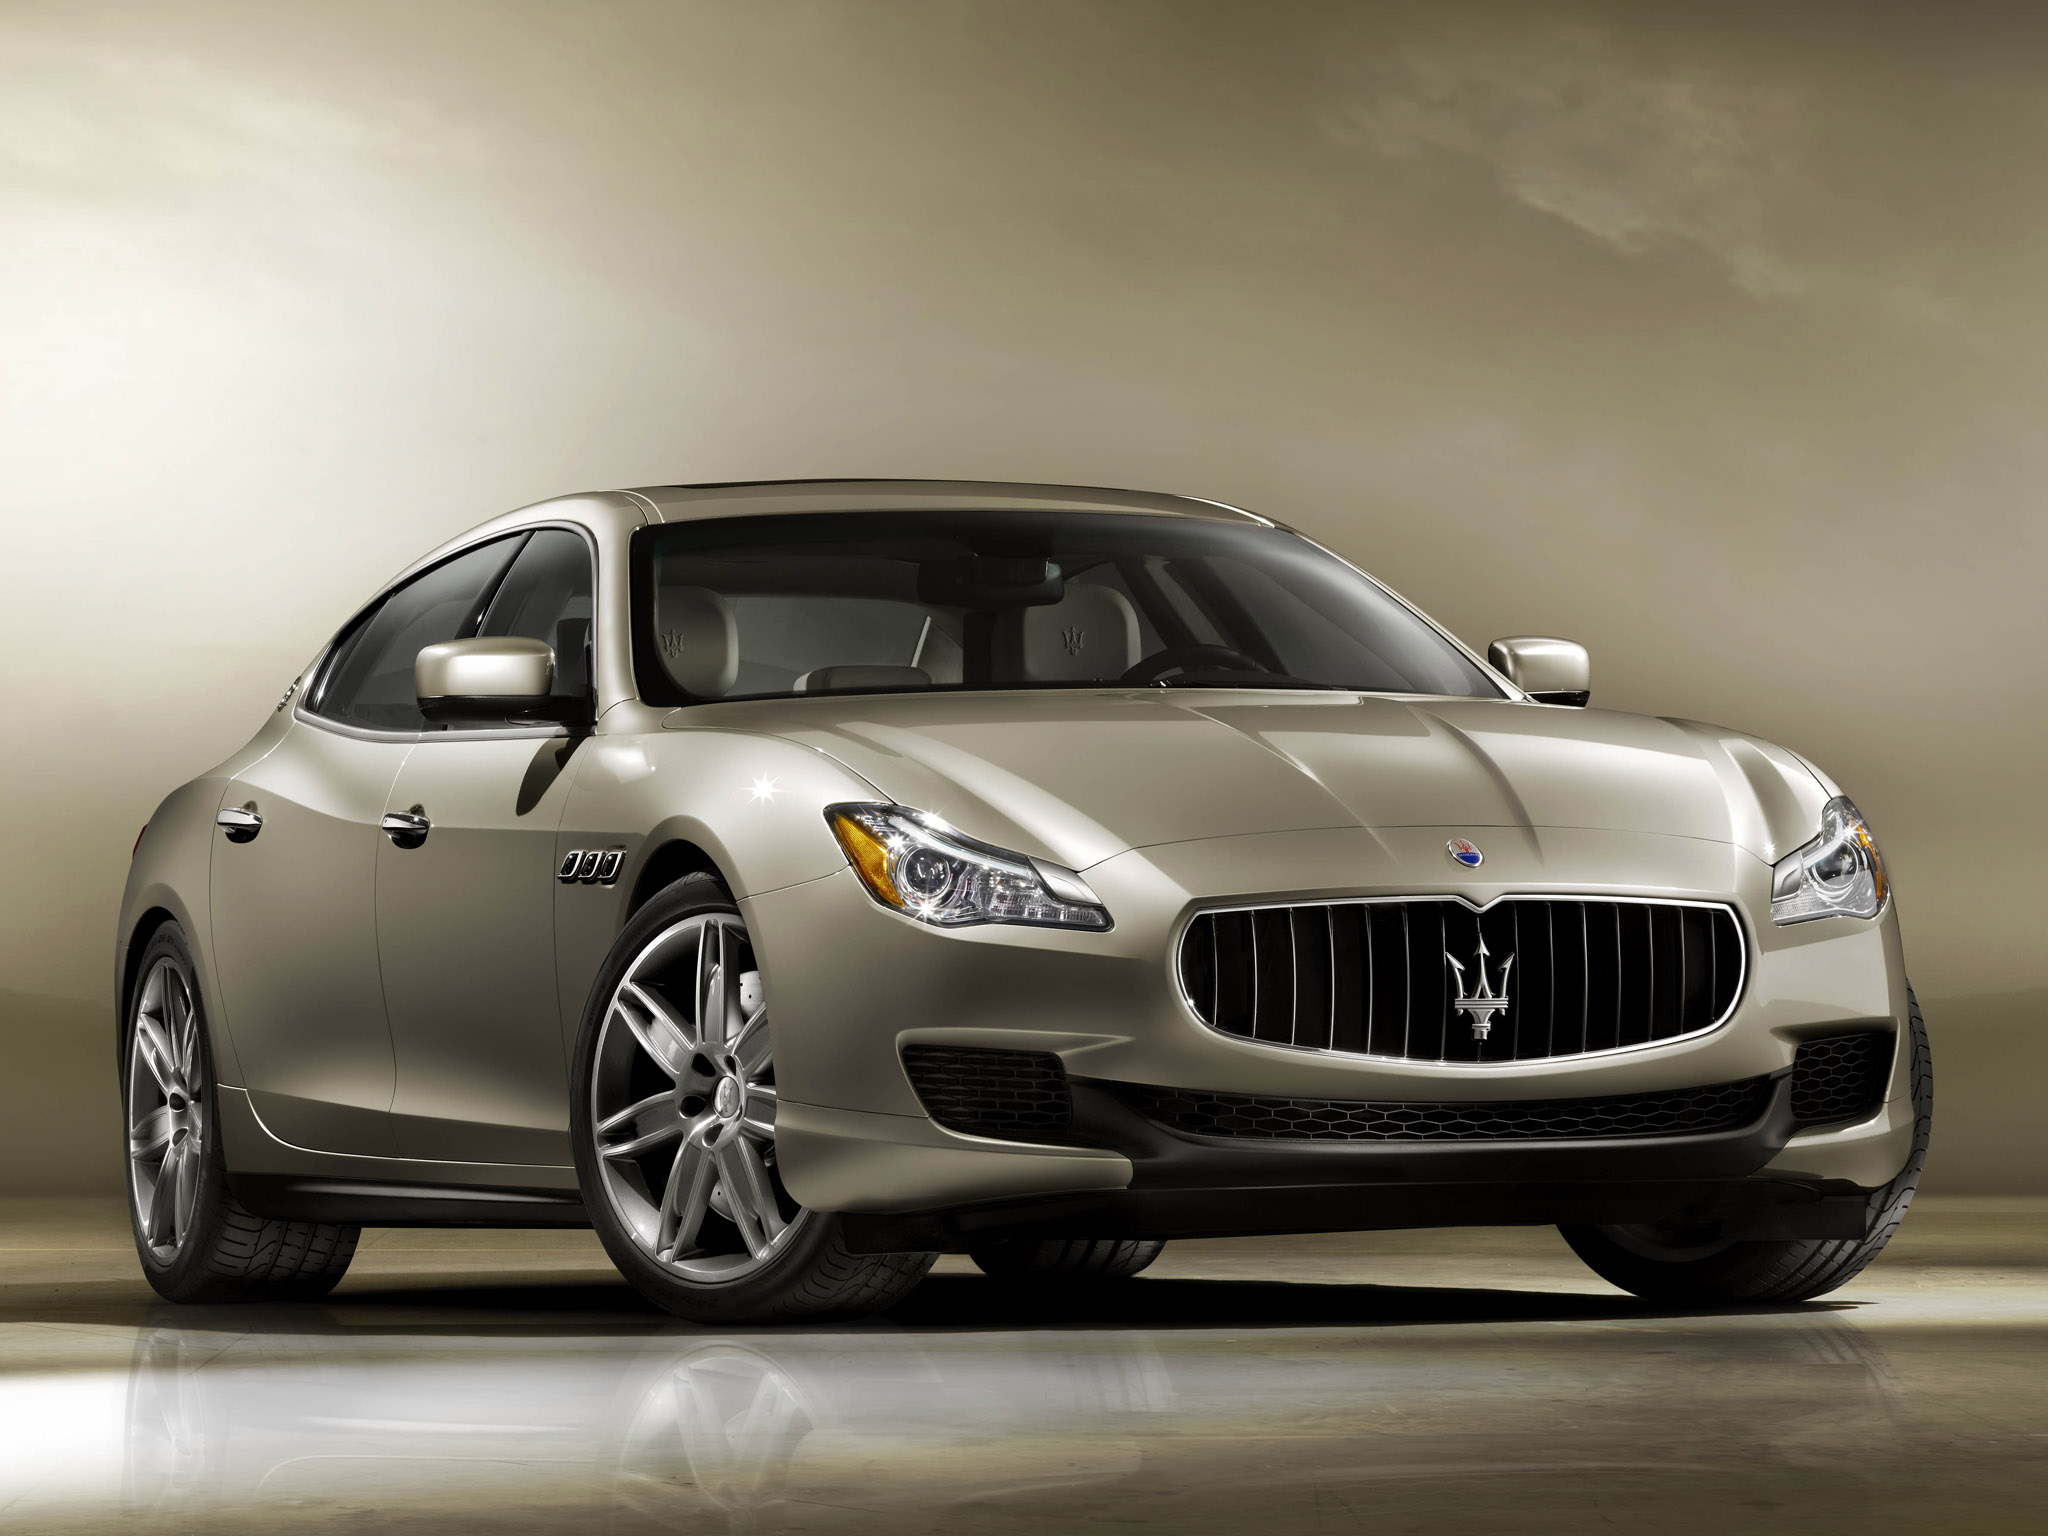 Maserati Quattroporte photo #1